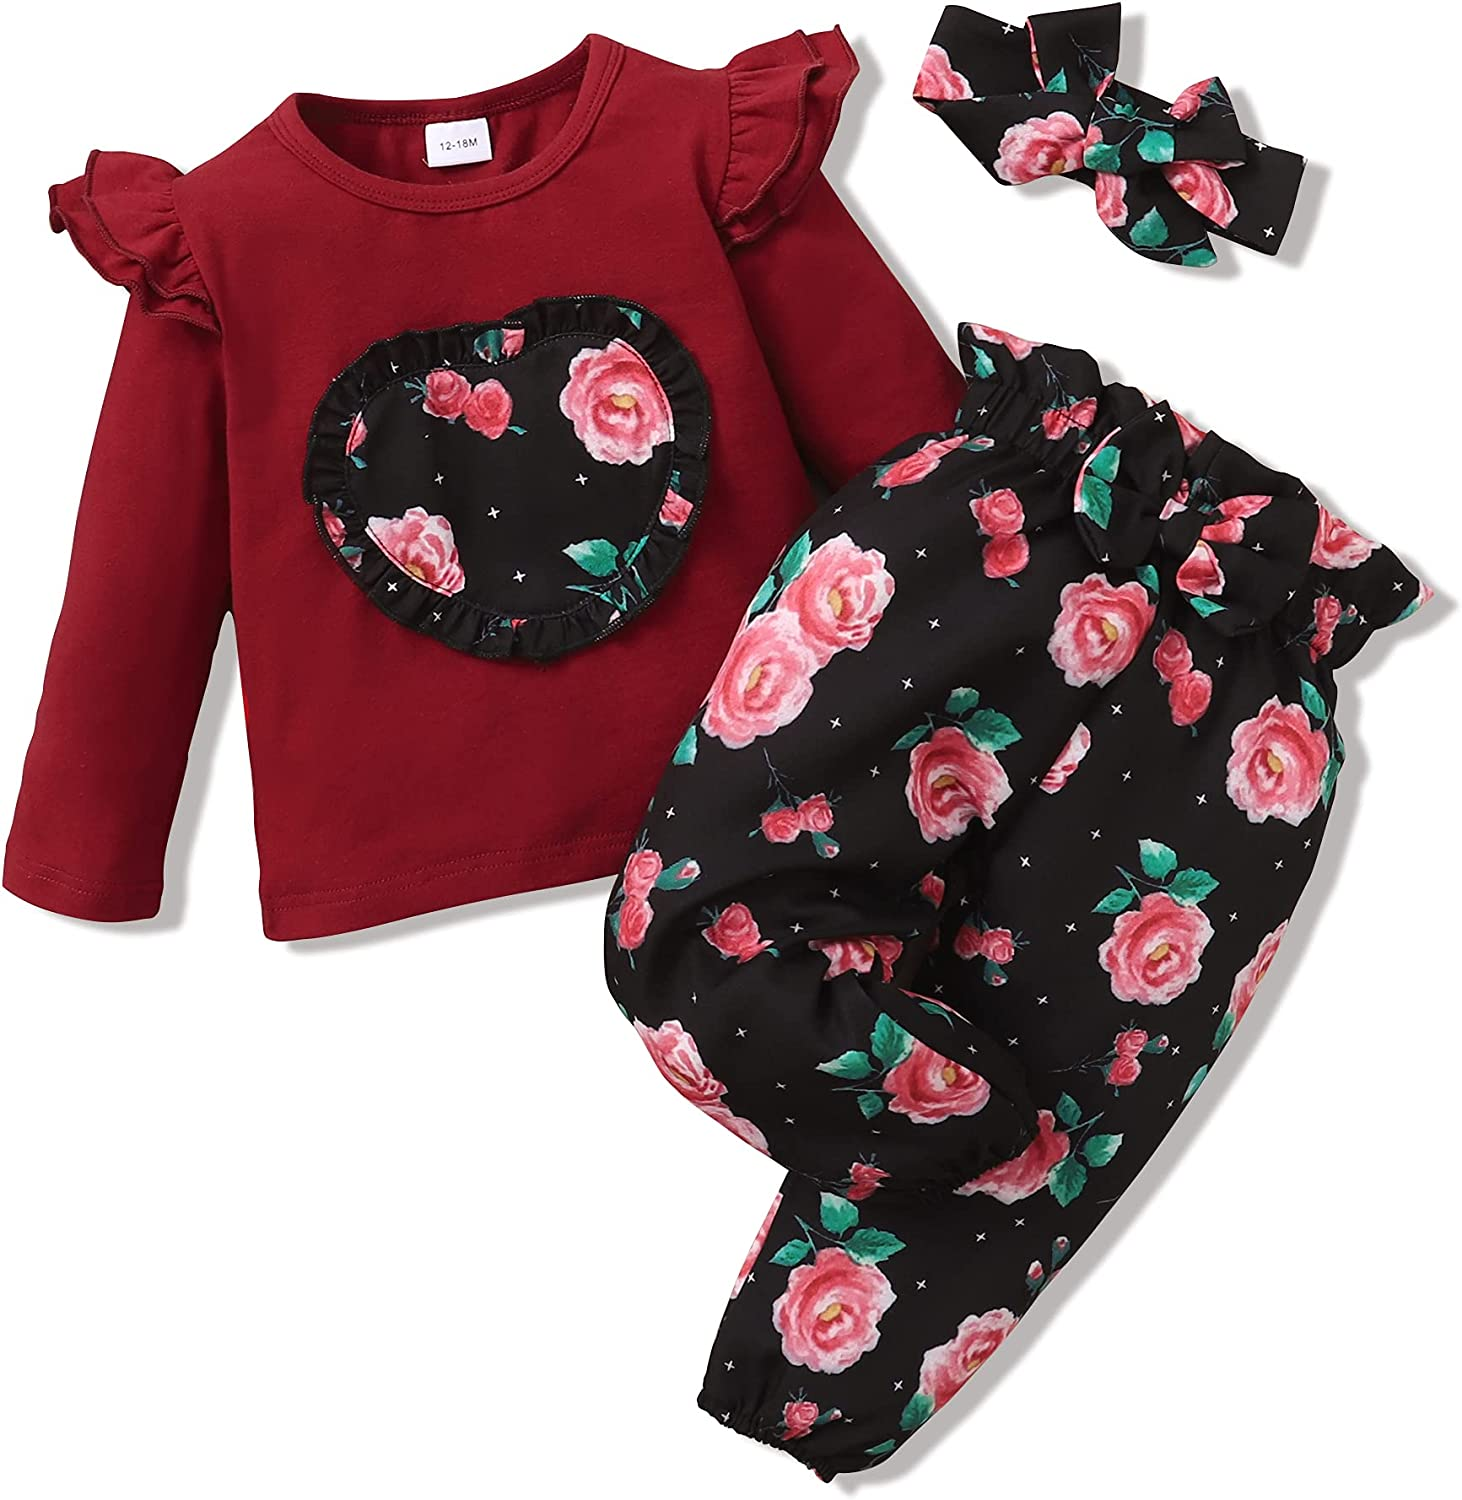 Toddler Girl Clothes Cute Baby Girl Outfit Love Heart Ruffle Top Floral Headband Pants Set 12M-4T